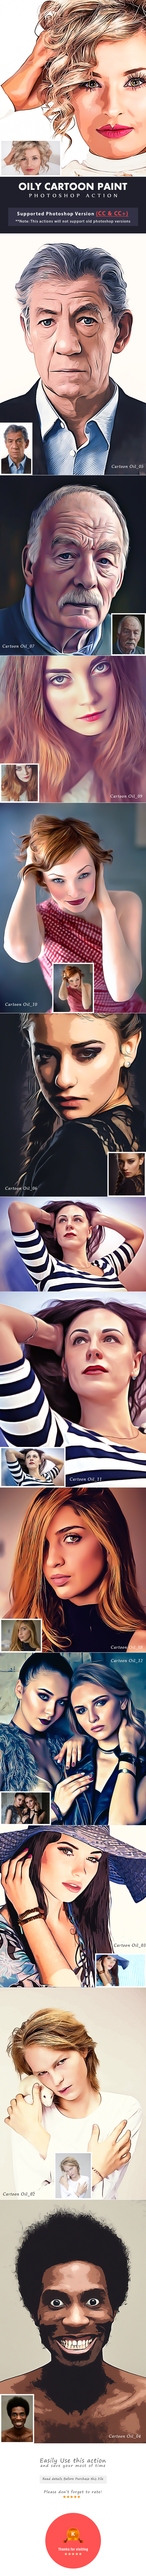 Oily Cartoon Paint Action - Photo Effects Actions